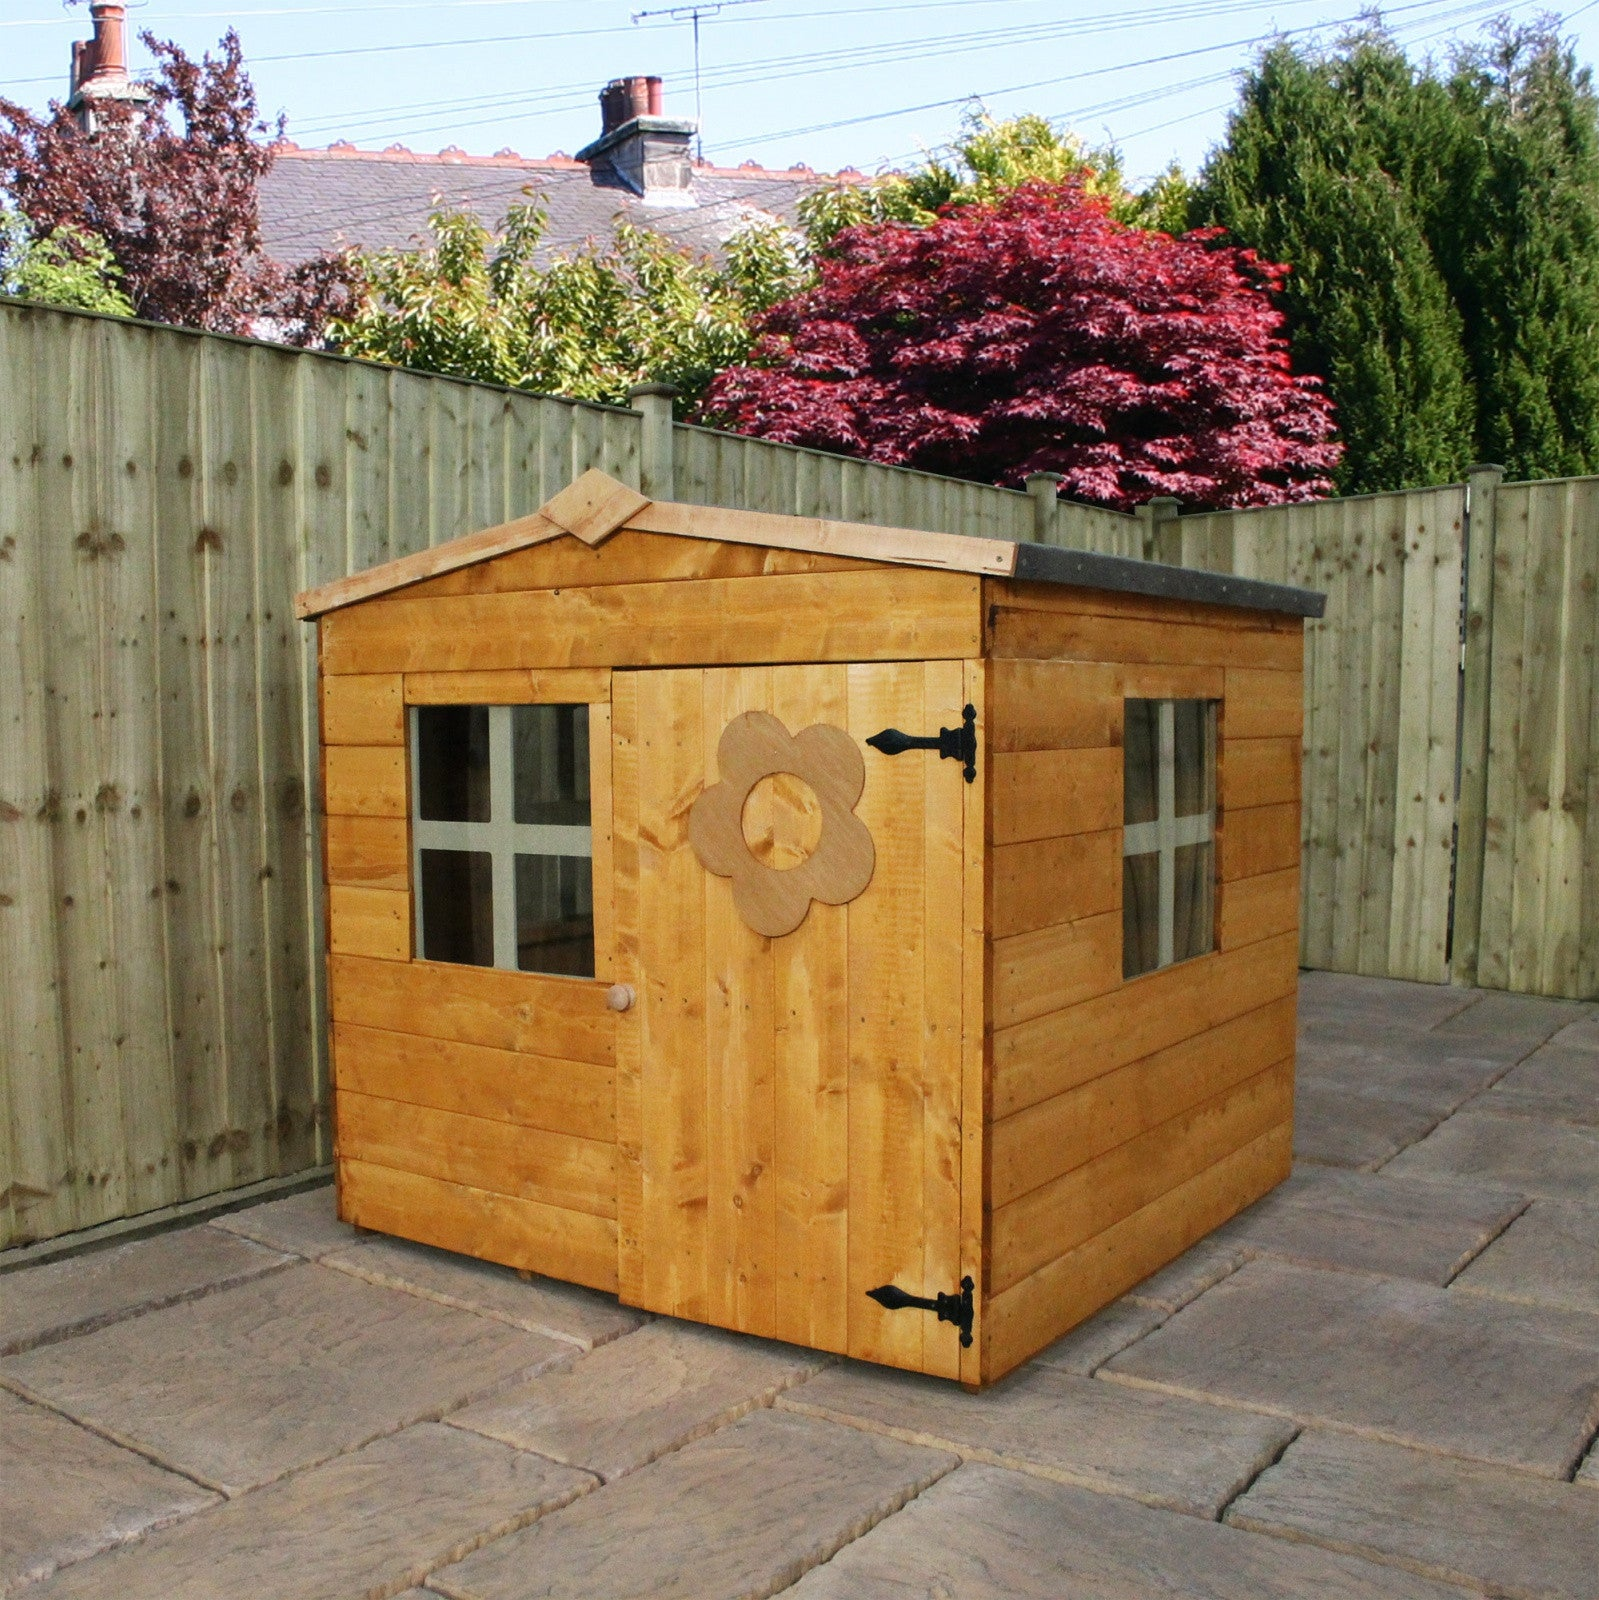 5' X 5' Wooden 'Bluebell' Playhouse